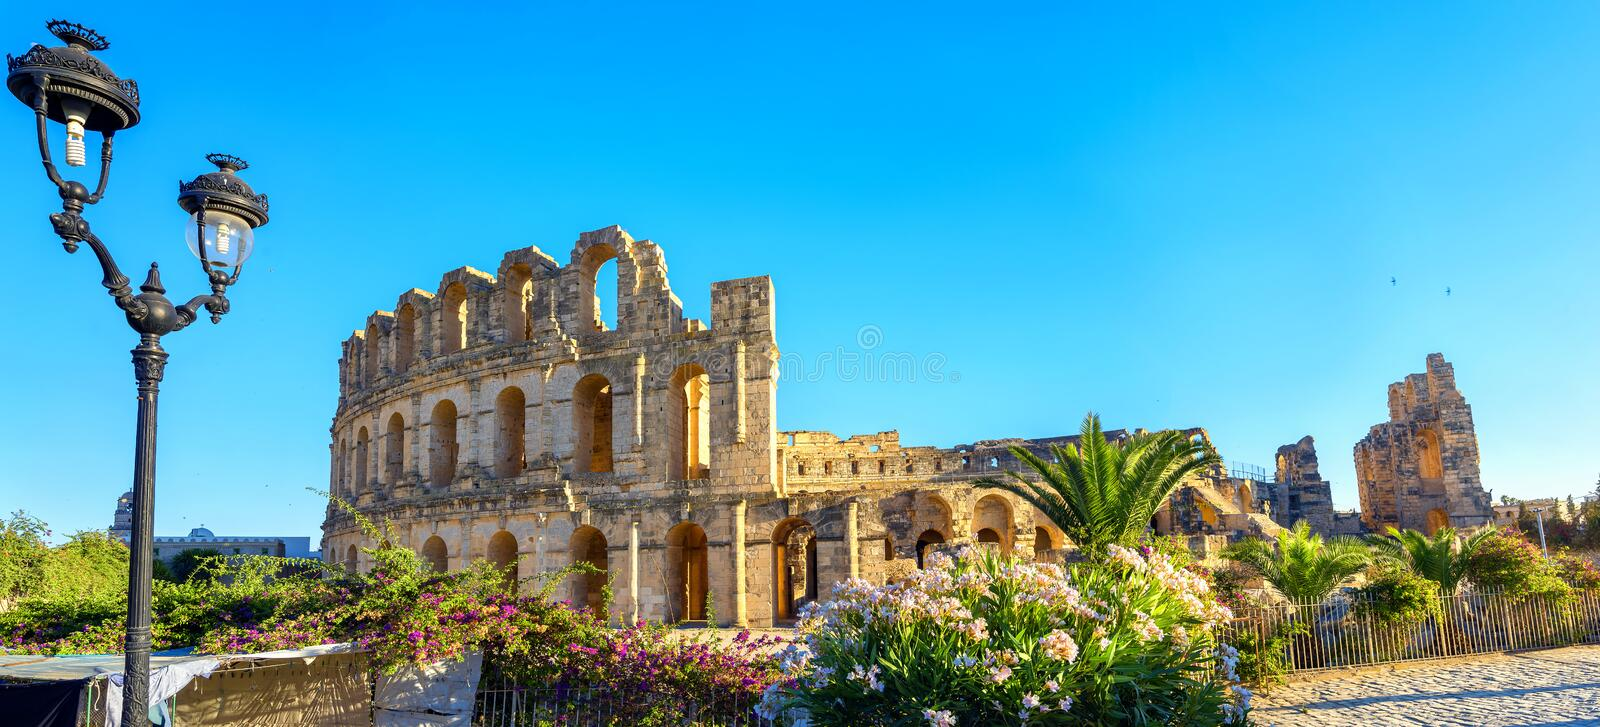 El Djem Colosseum amphitheater. Tunisia, North Africa. Panoramic view of ancient roman amphitheater in El Djem. Mahdia governorate, Tunisia, North Africa royalty free stock photography